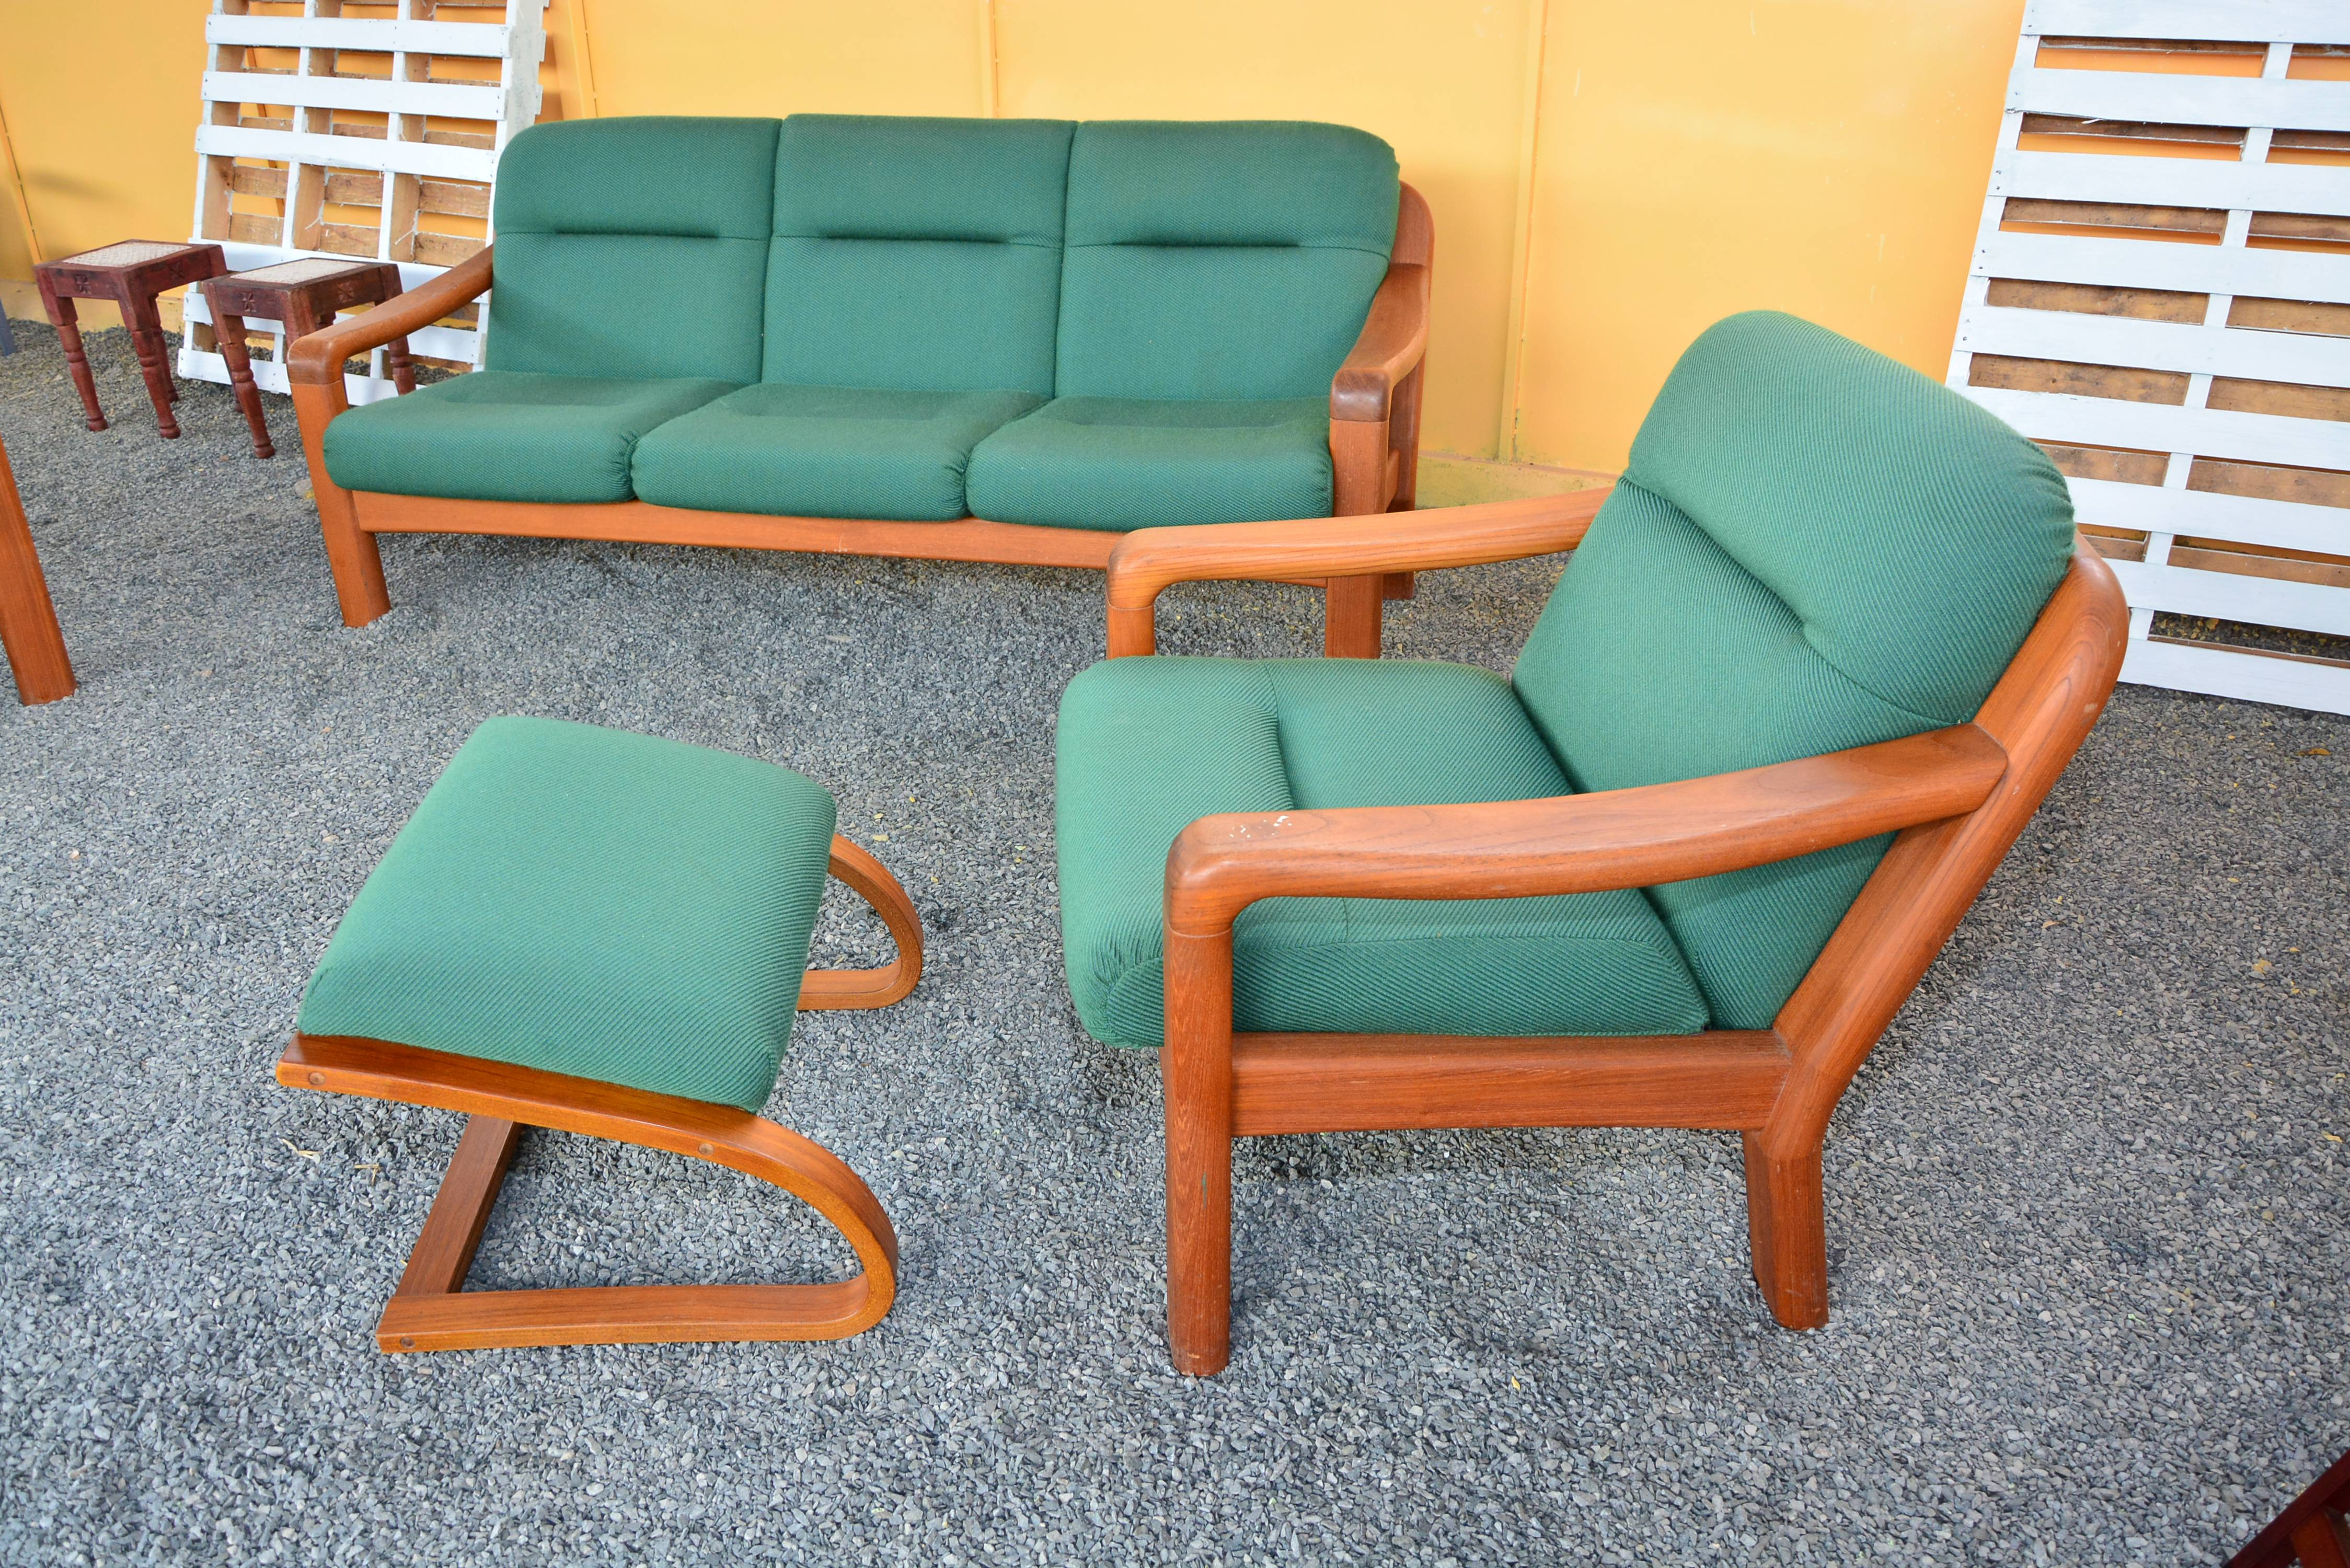 5 Seater Wooden Armed Sofa Set With Cushioned Foot Rest